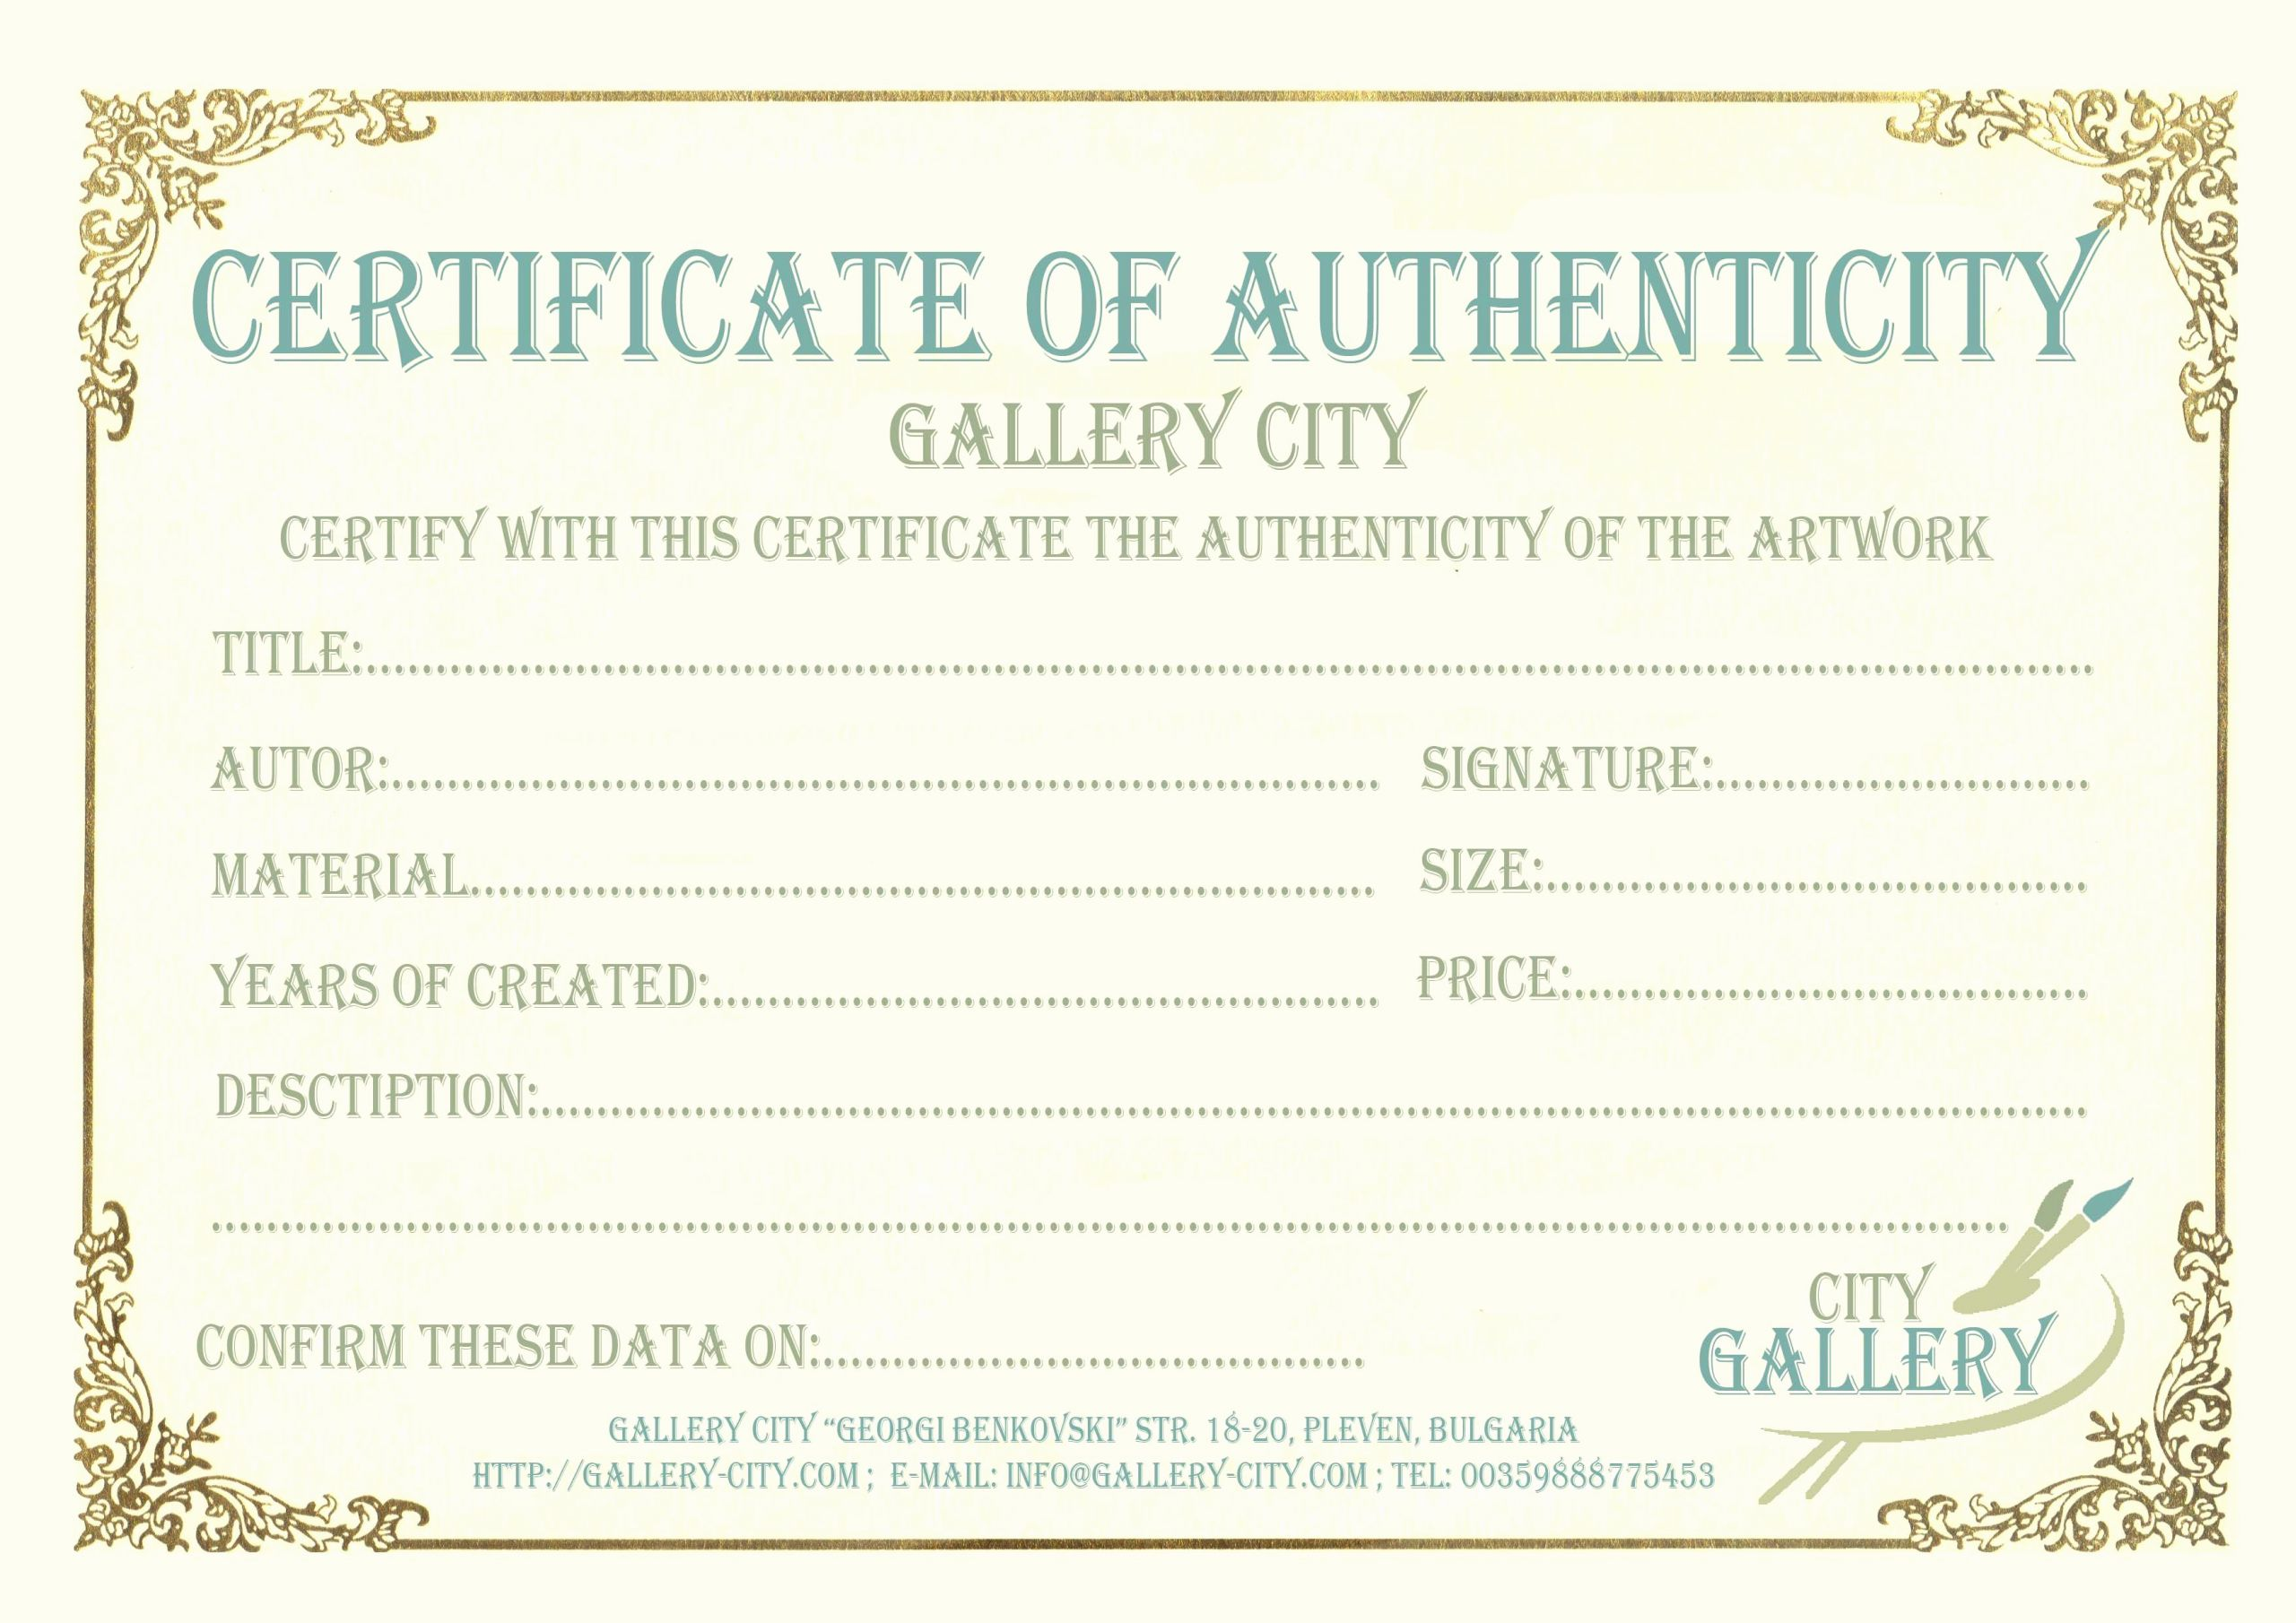 Artwork Certificate Of Authenticity Template Awesome Certificate Authenticity Template Art Authenticity